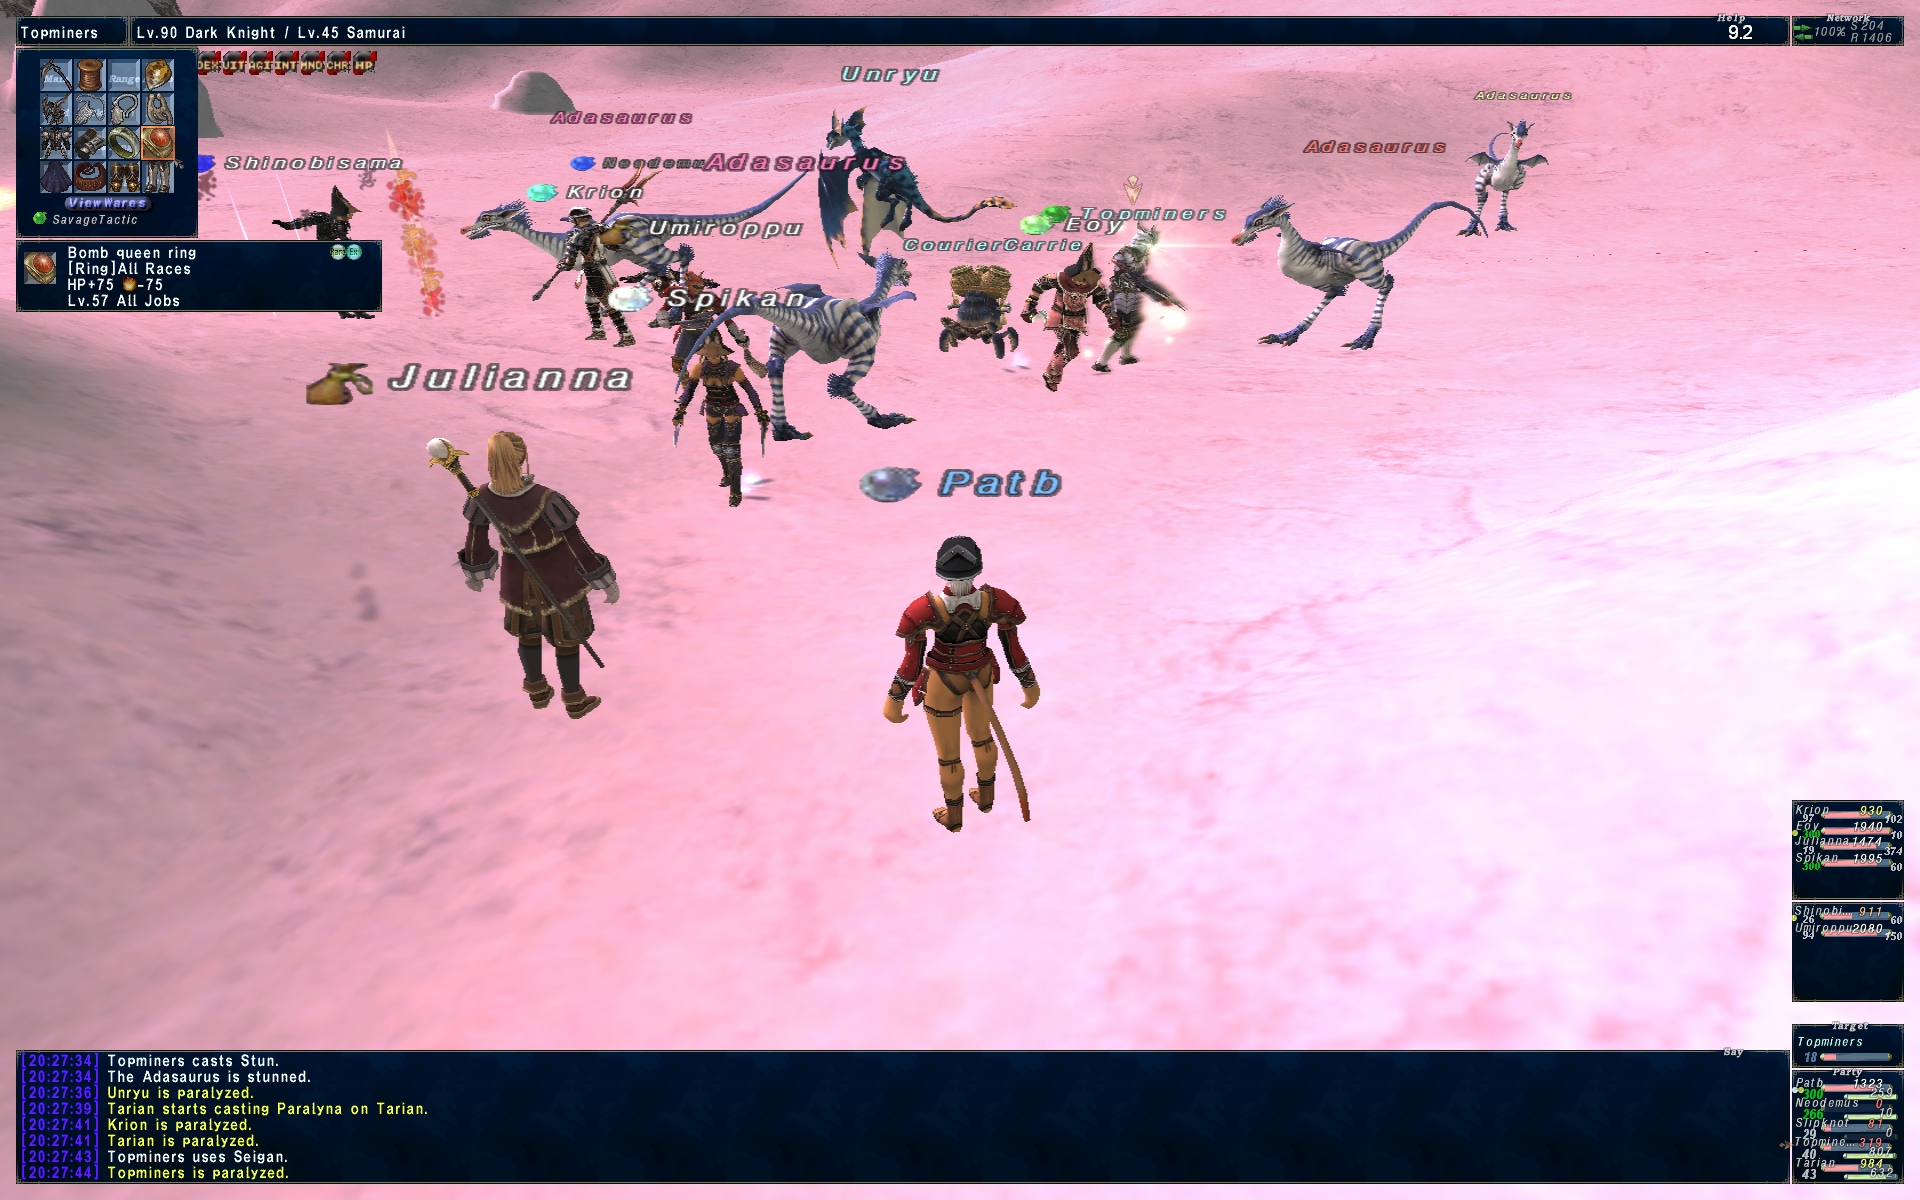 patb ffxi gear lv78 wear stand cares leech dolls xxii thread literally player make pics renzys gimpleeches long taking shots screen point fast killing presuming lv90s contribute mobs gonna vtit listed mooch damage contribution tier this play gimpconfusedwtf contributions